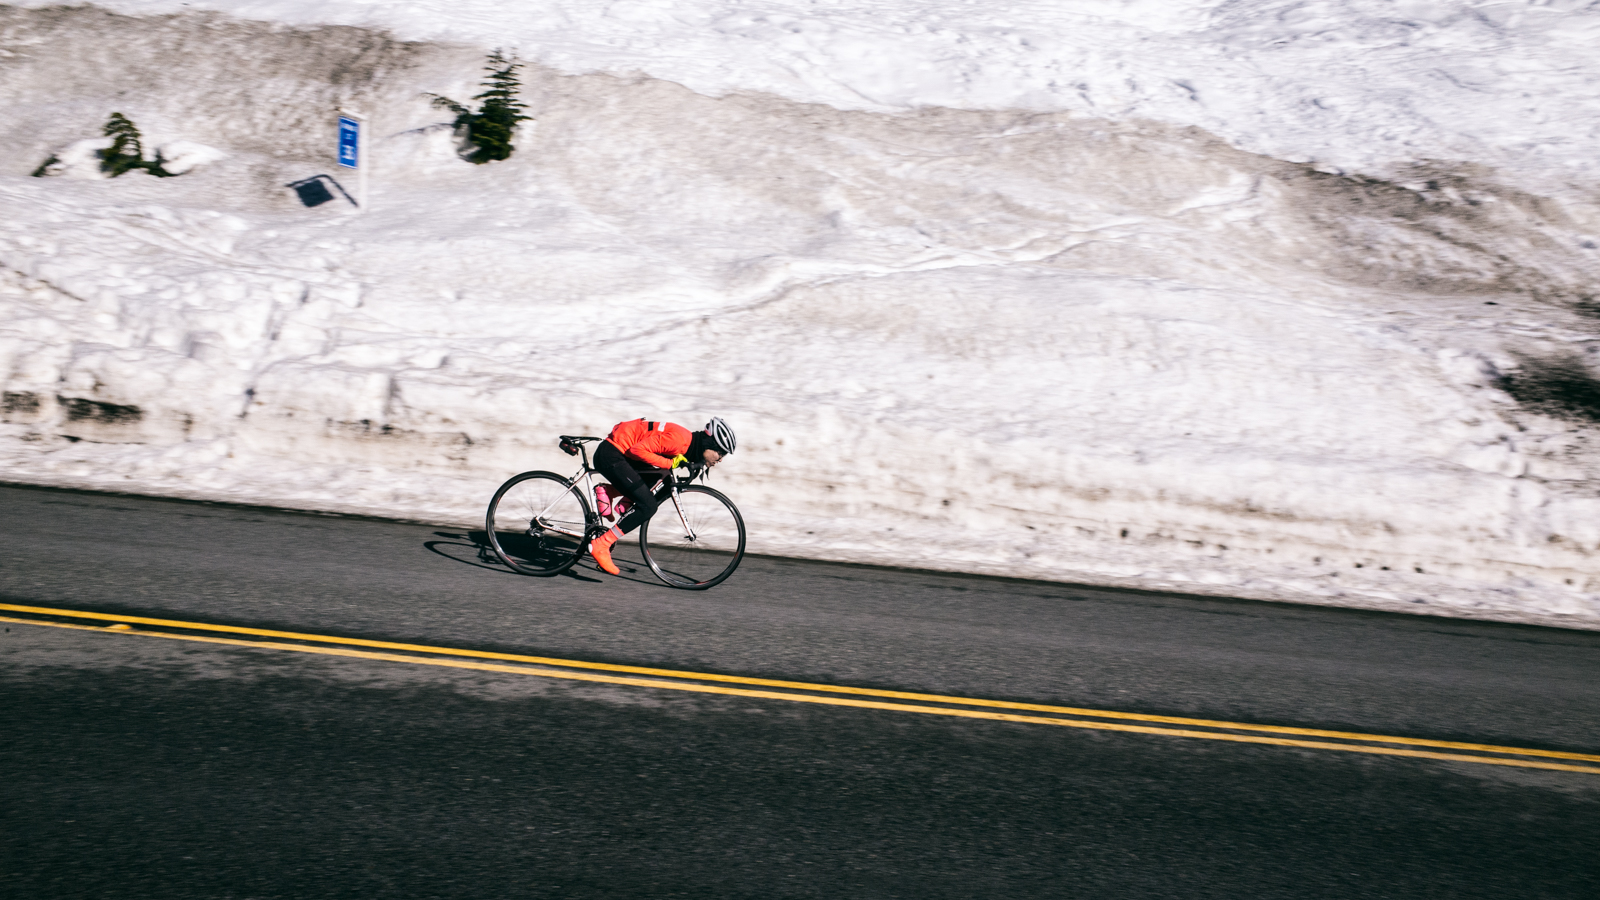 February 8. The snow did accumulate at the summit, but it was still completely rideable.